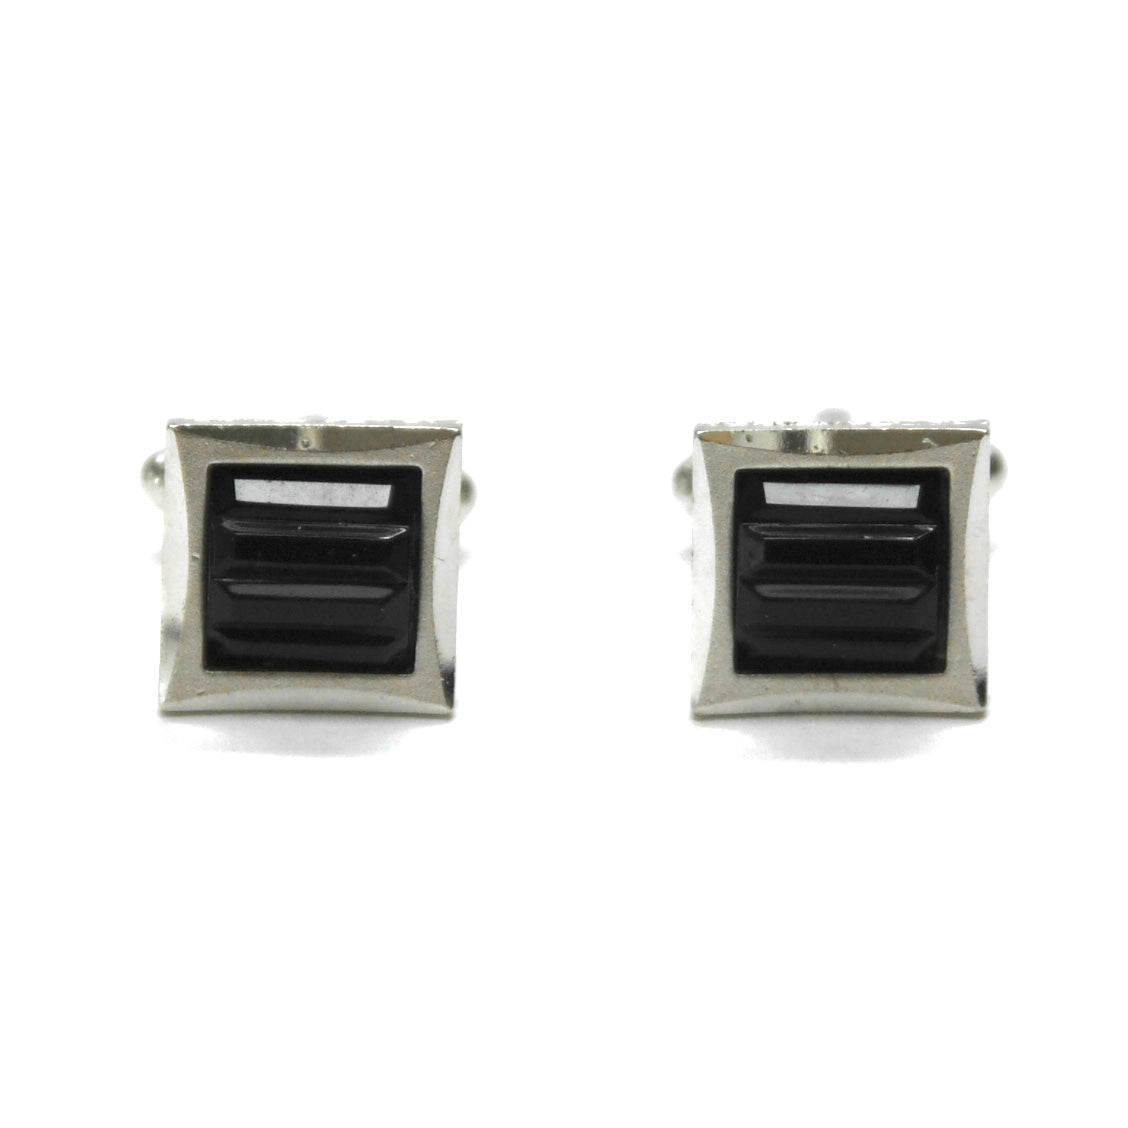 1980s Small Glass Cufflinks, Black